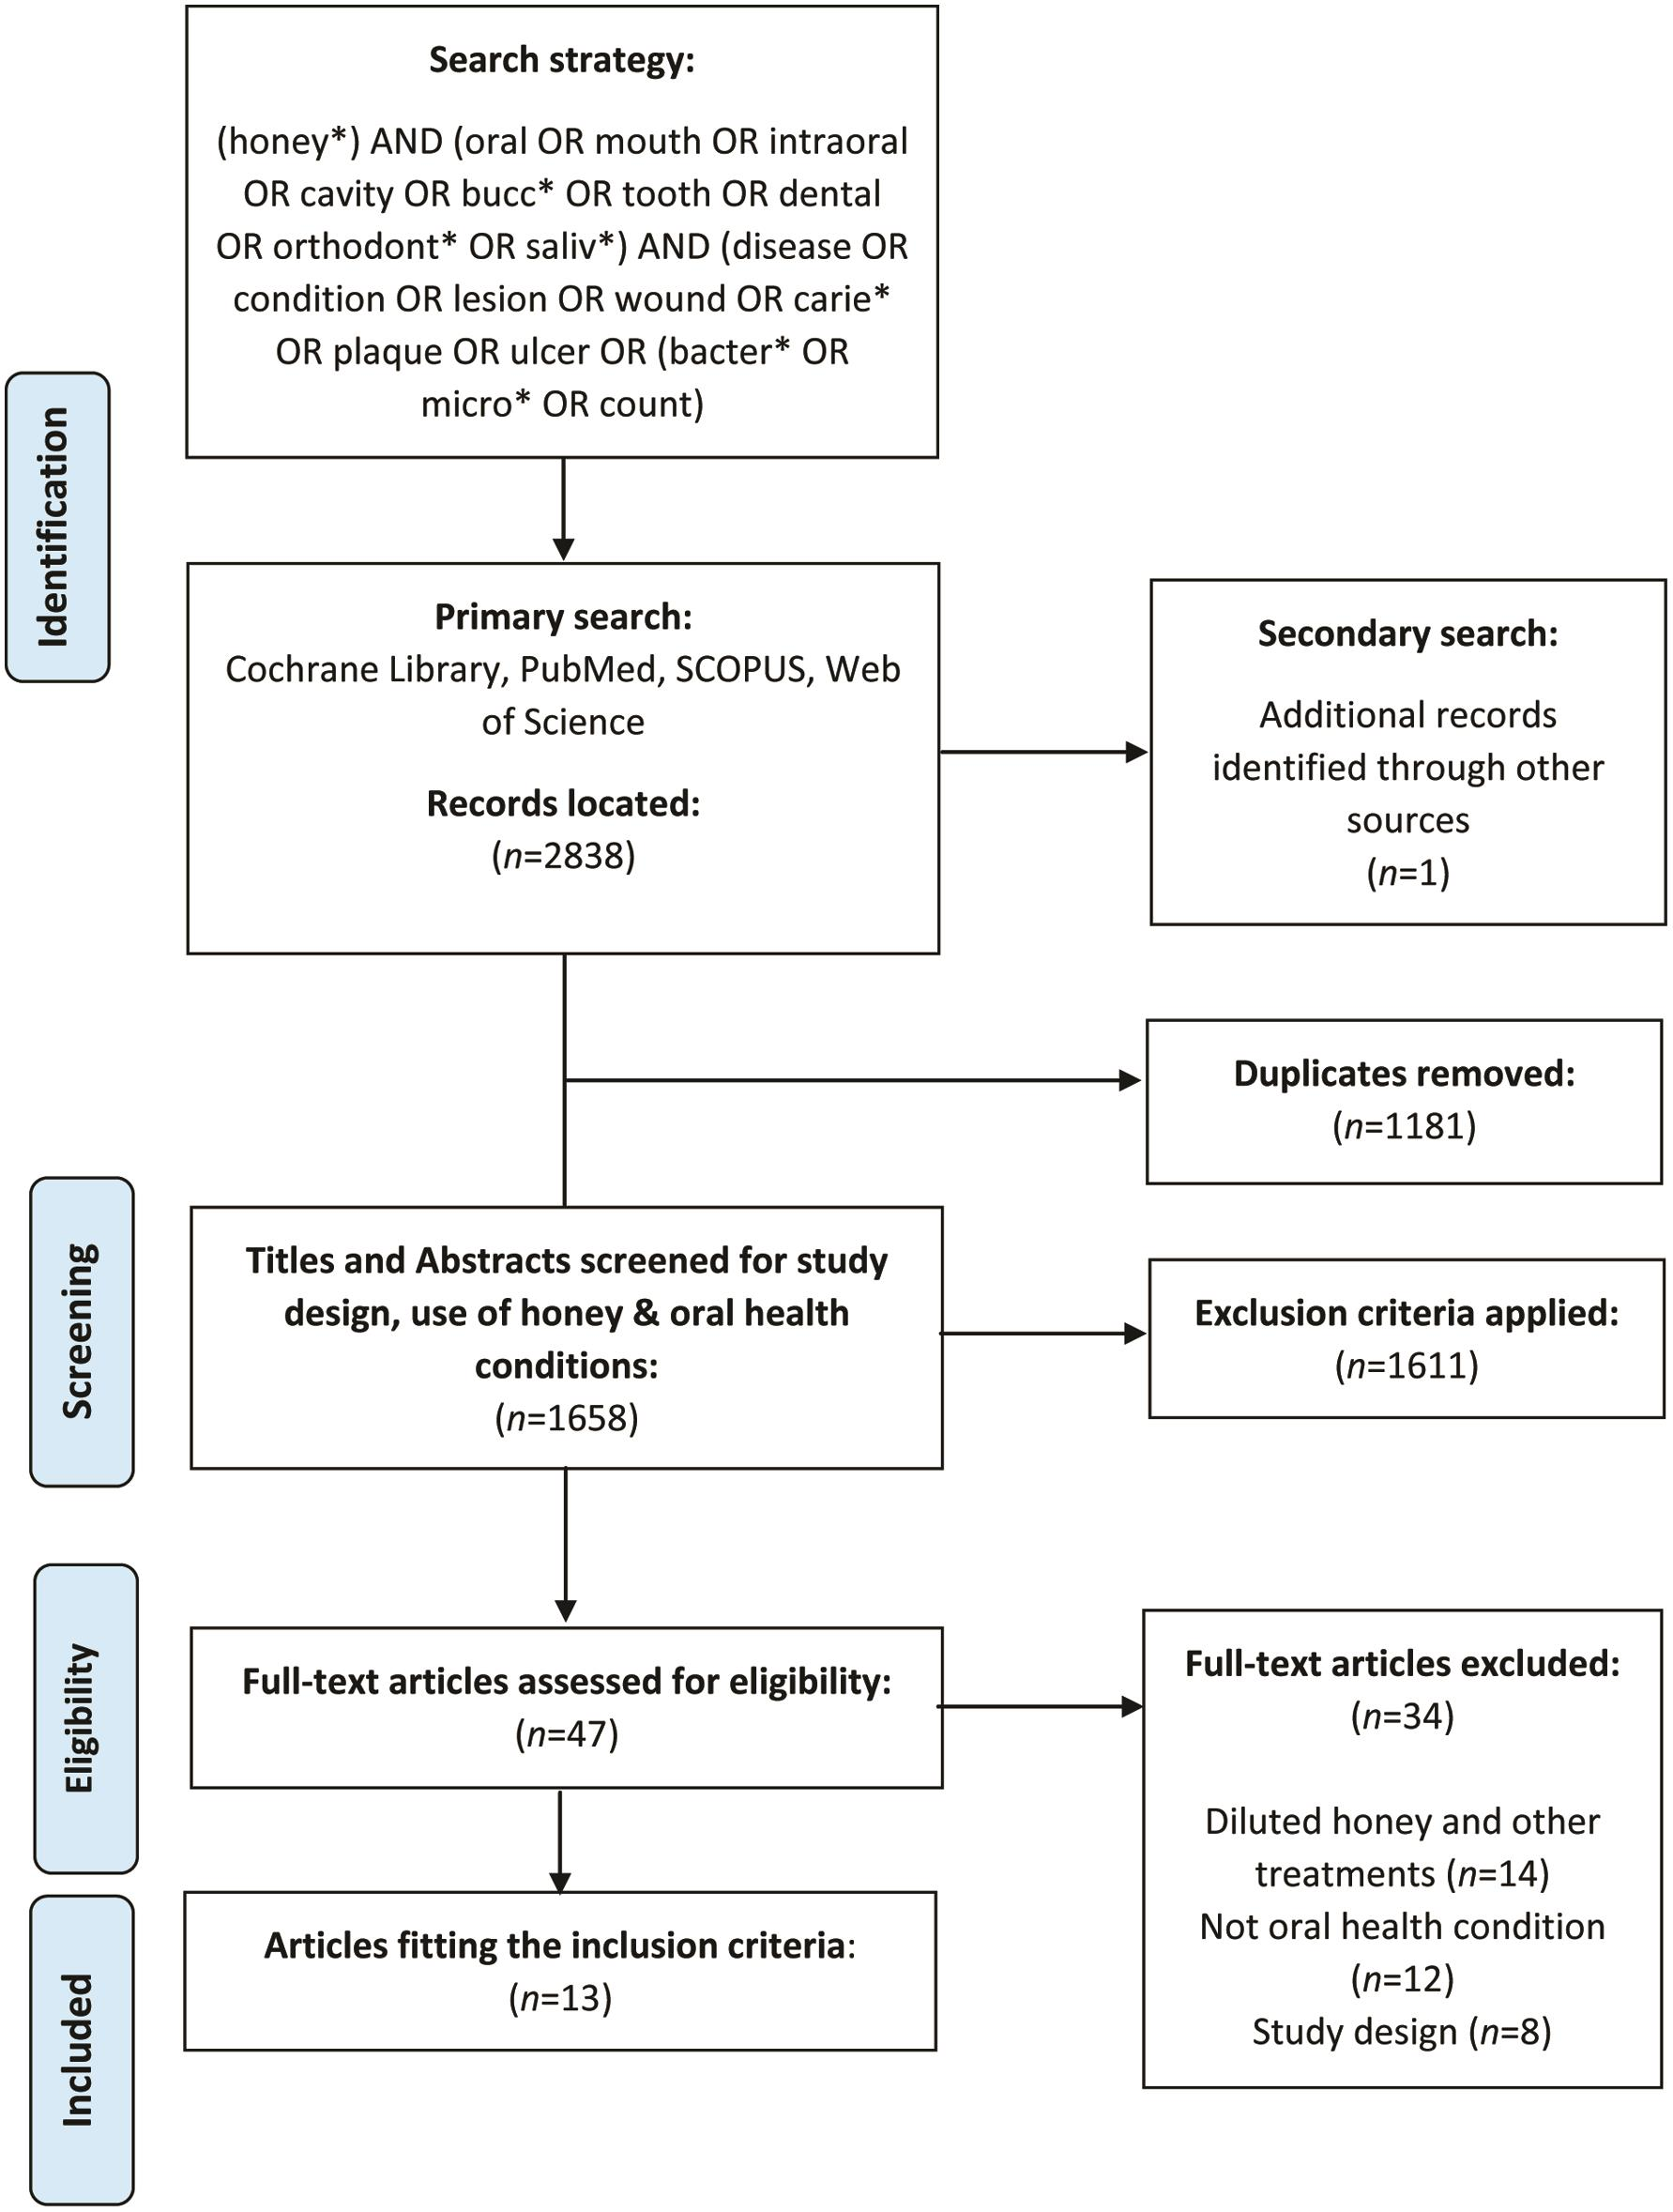 Search strategy and article selection process according to the Preferred Reporting Items for Systematic Reviews and Meta-Analyses (PRISMA) Guidelines.